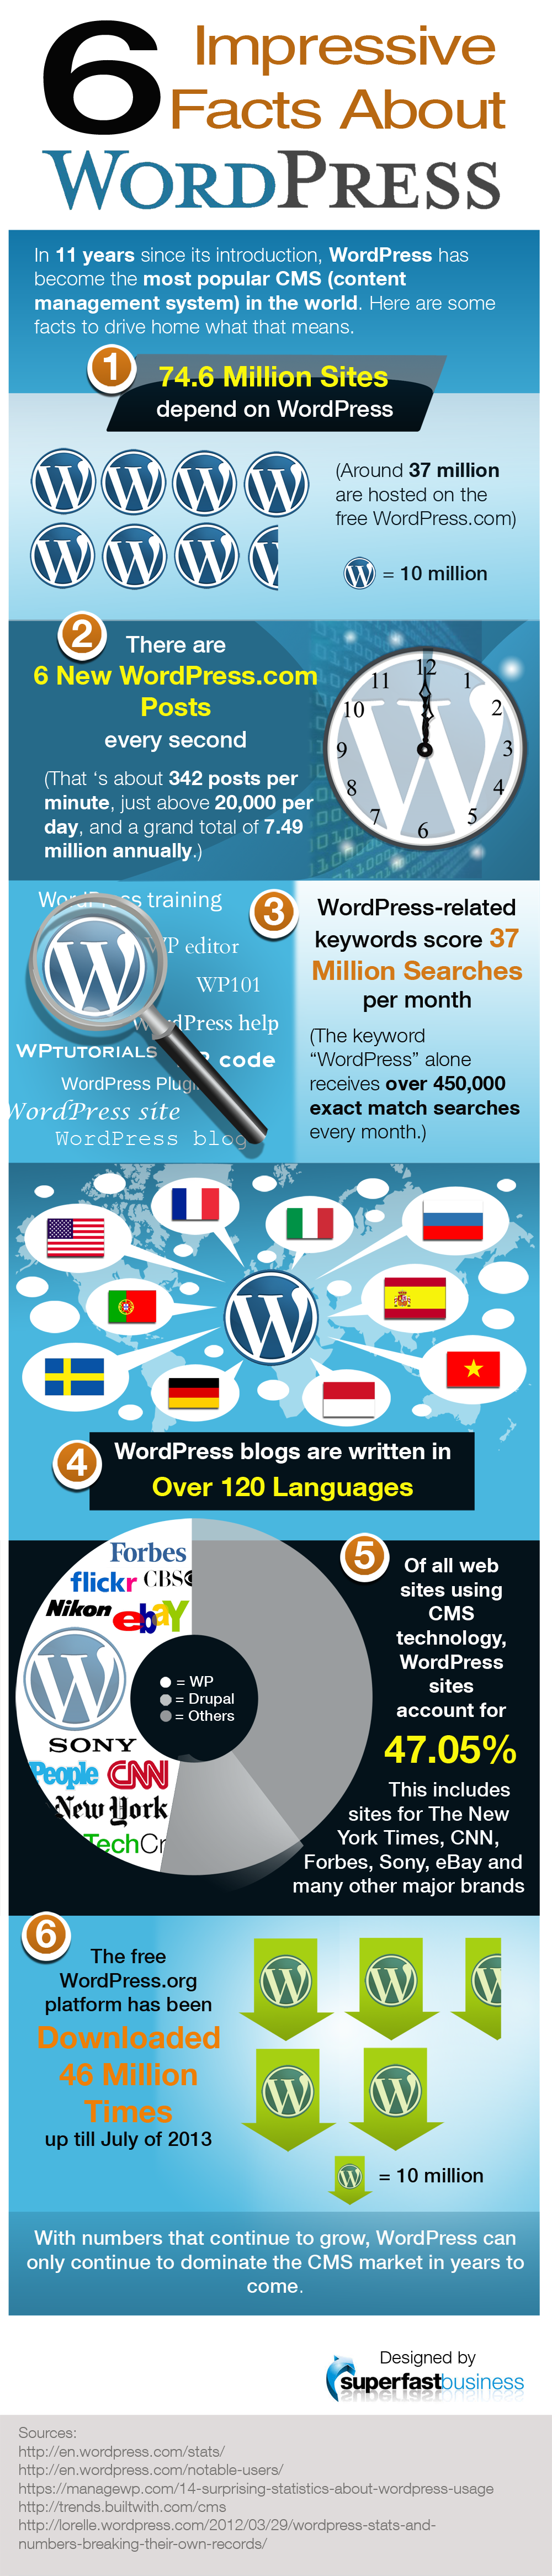 Impressive Facts About WordPress